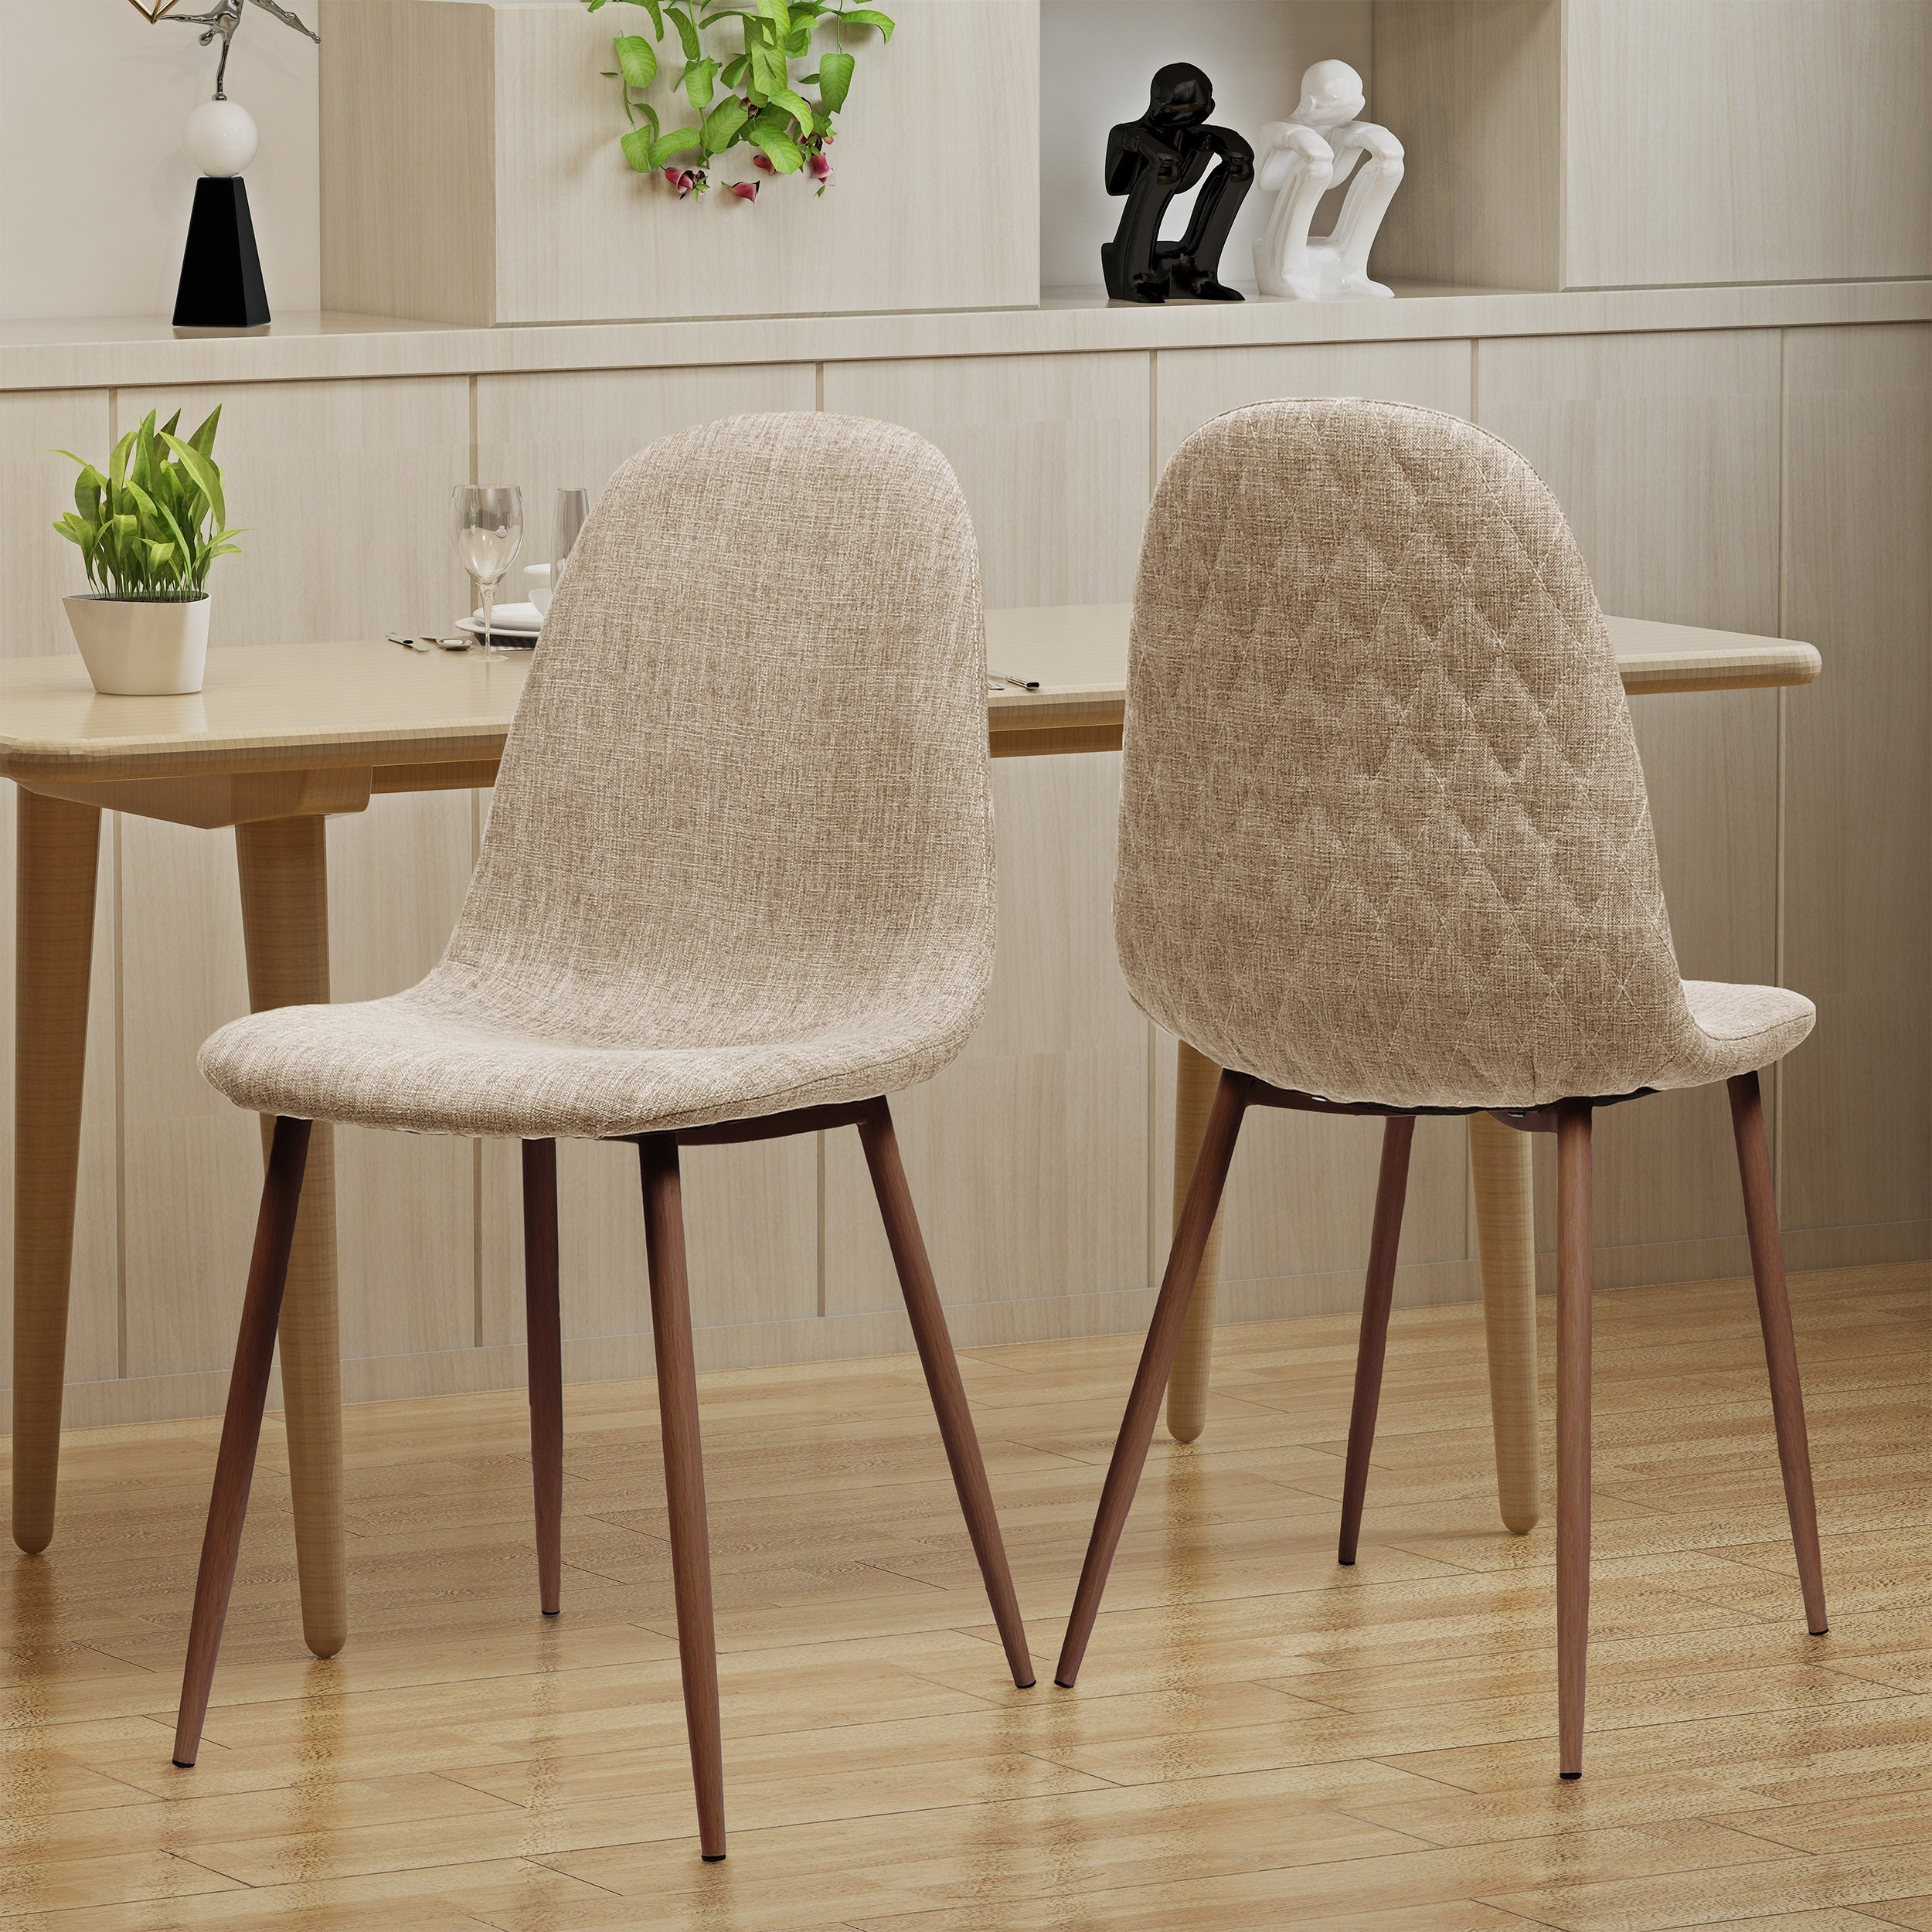 Caden Mid Century Fabric Dining Chair (Set Of 2) By Christopher Knight Home    Free Shipping Today   Overstock   24637702